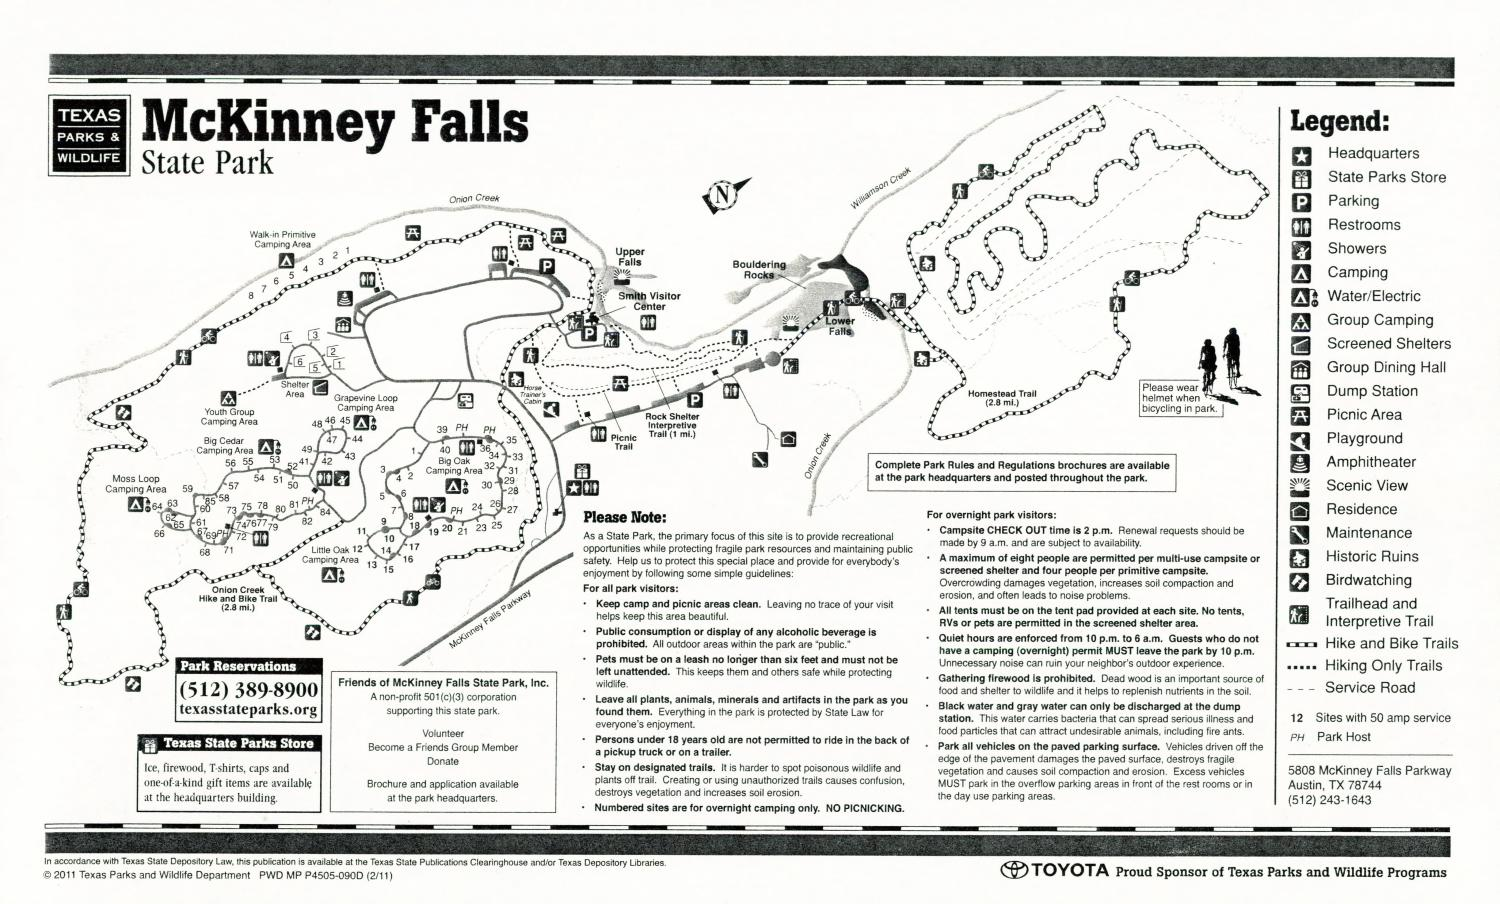 McKinney Falls State Park, Map of the McKinney Falls State Park outlining hiking trails and highlighting activities, facilities, and other features such as bathrooms, lodgings, water/electric, etc. It also contains general information for the park and for the Texas Parks and Wildlife Department.,